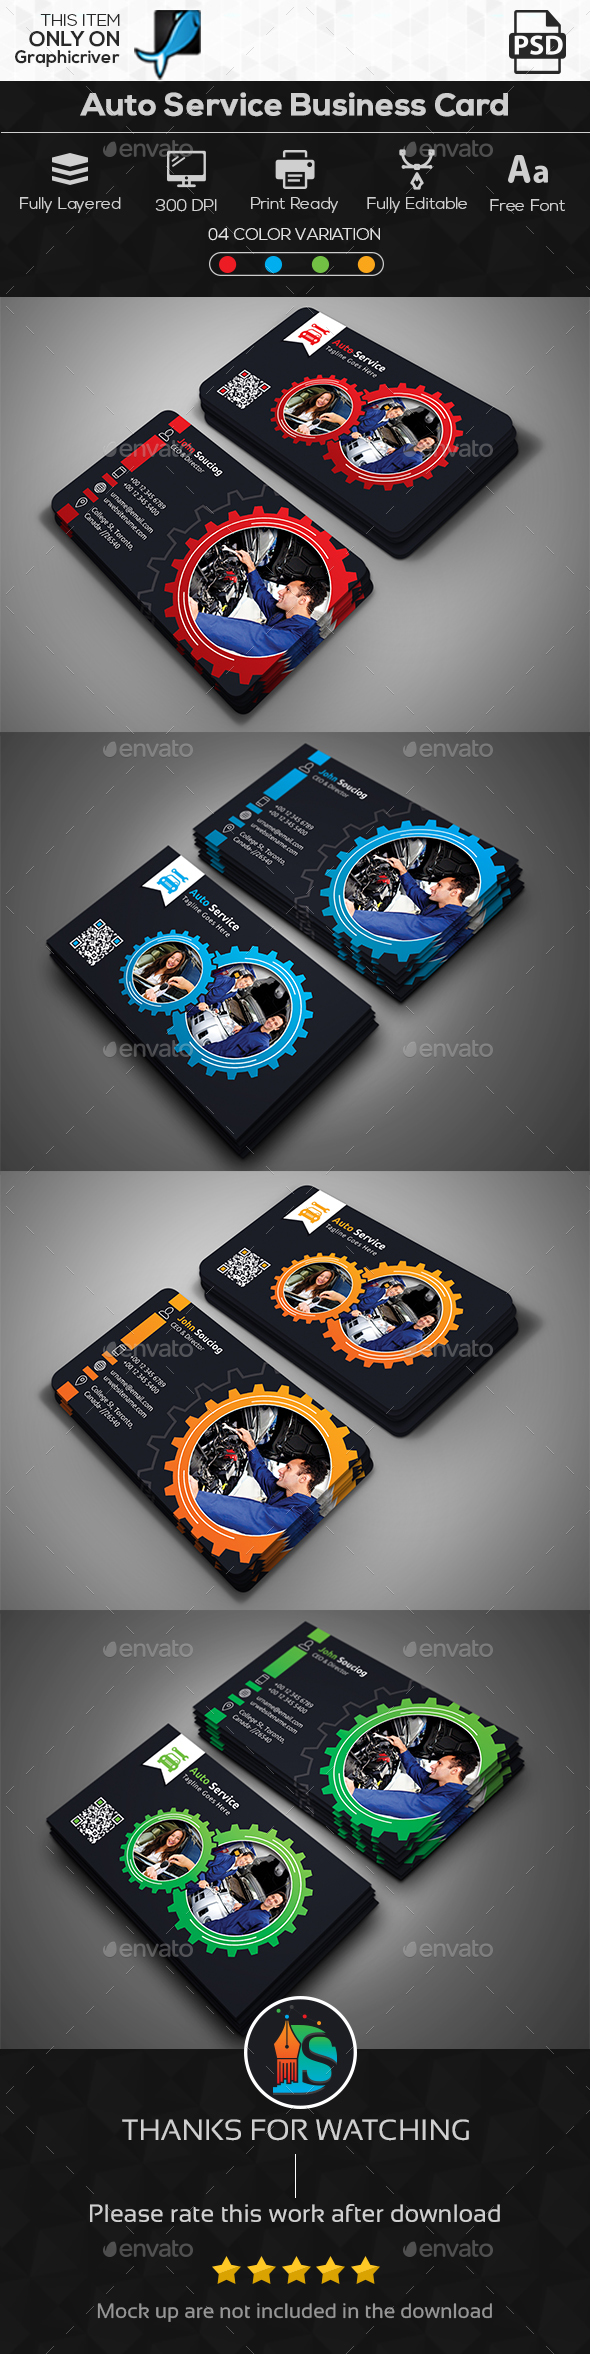 Auto Service Business Card by DesignSign   GraphicRiver